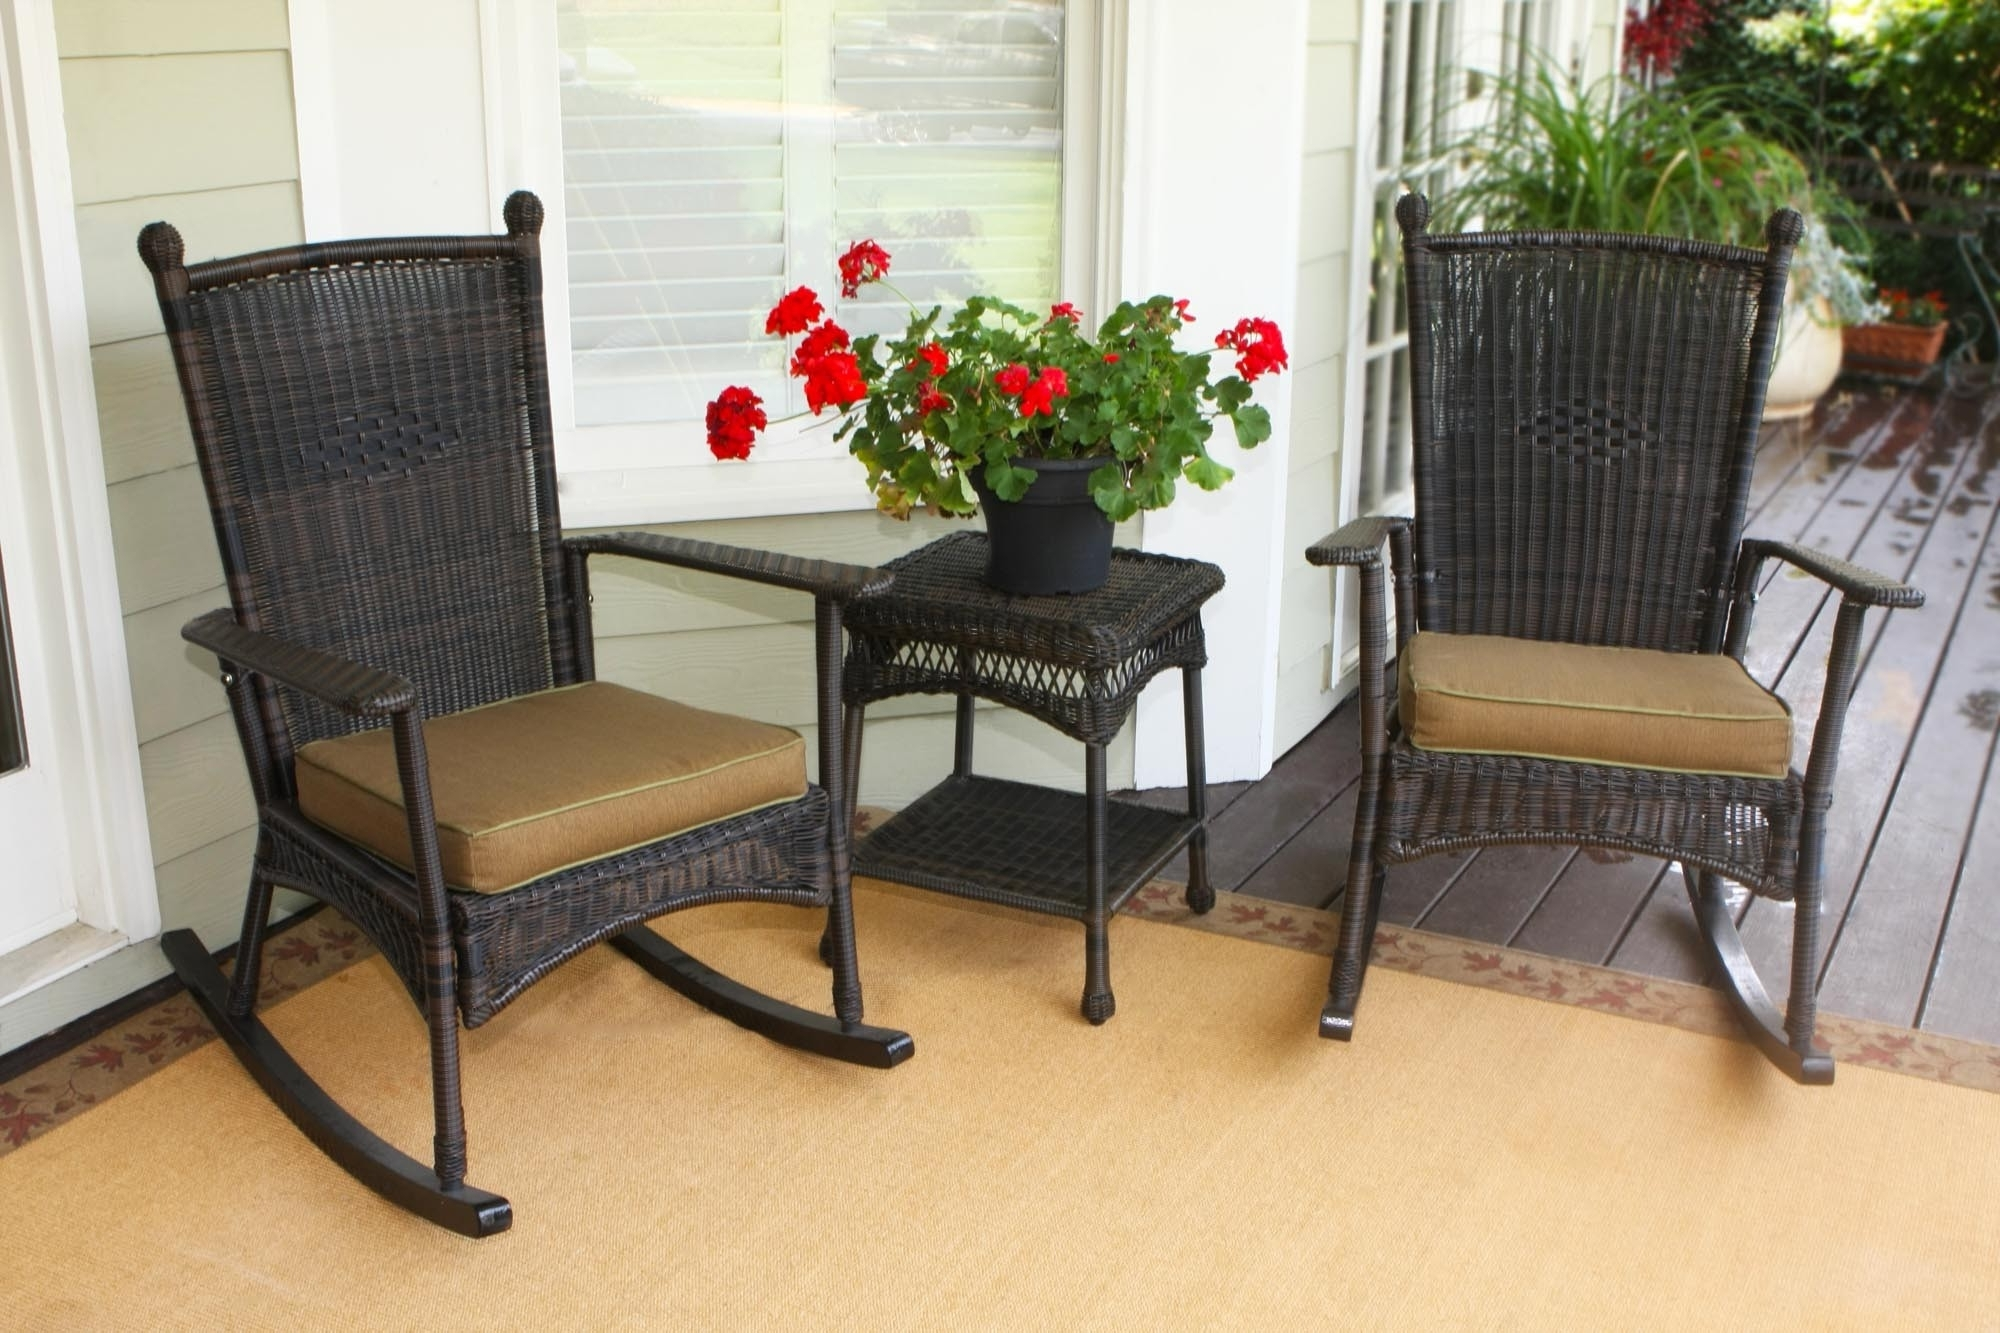 Outdoor Rocking Chairs With Table With Regard To Widely Used Rocking Chairs – Tortuga Outdoor Of Georgia – Alpharetta (View 14 of 15)